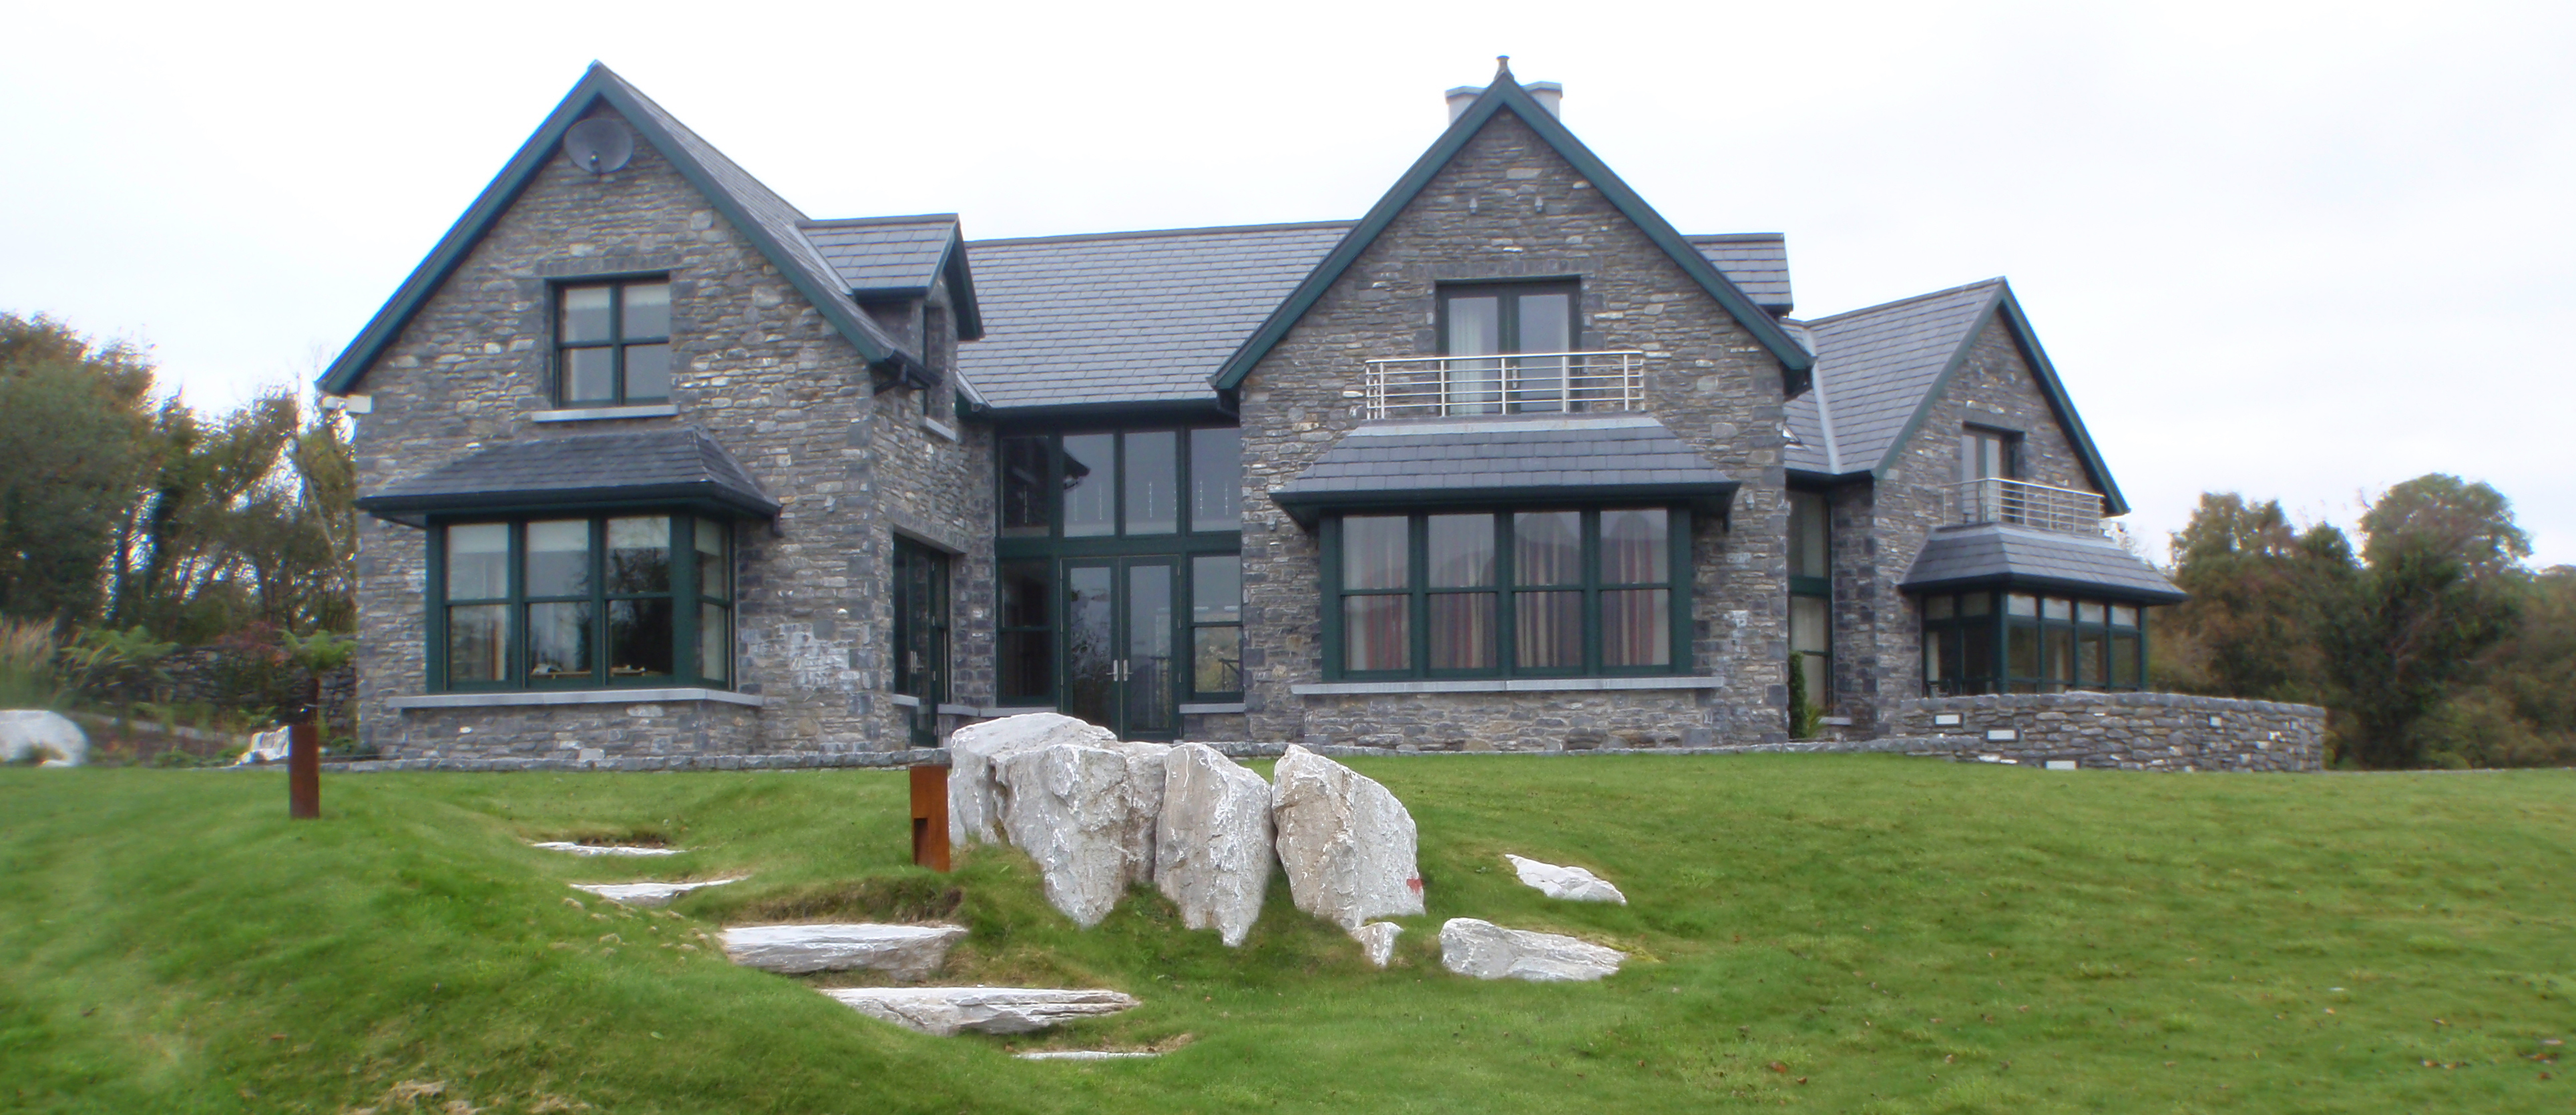 Rural Cottage Designs Contemporary Design Architecture Plans Samples Architects Kenmare Kerry Cork Ireland